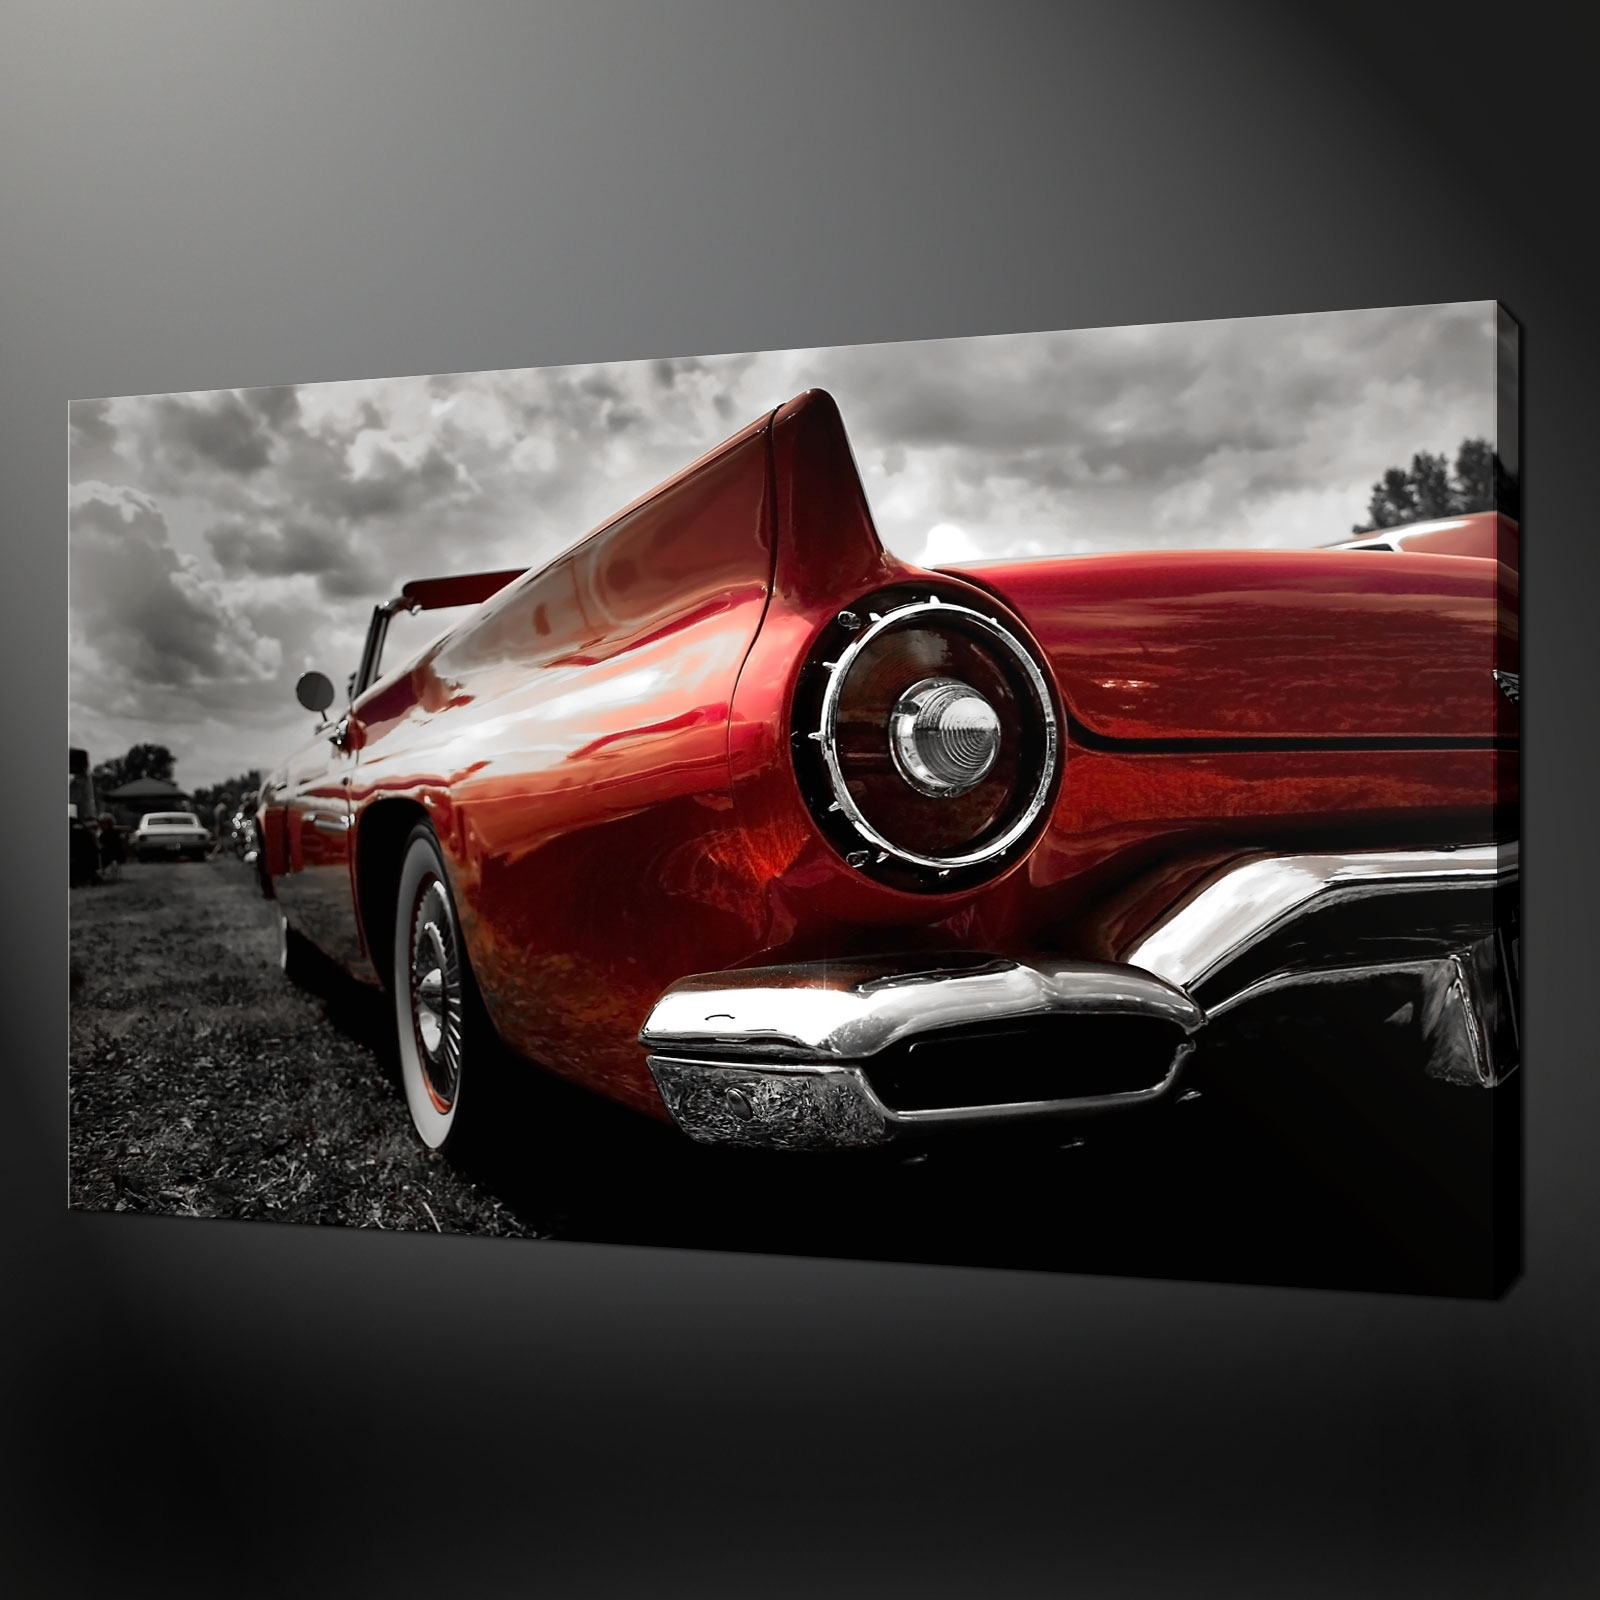 Classic Red Car Canvas Print Picture Wall Art Regarding Most Current Car Canvas Wall Art (View 15 of 20)